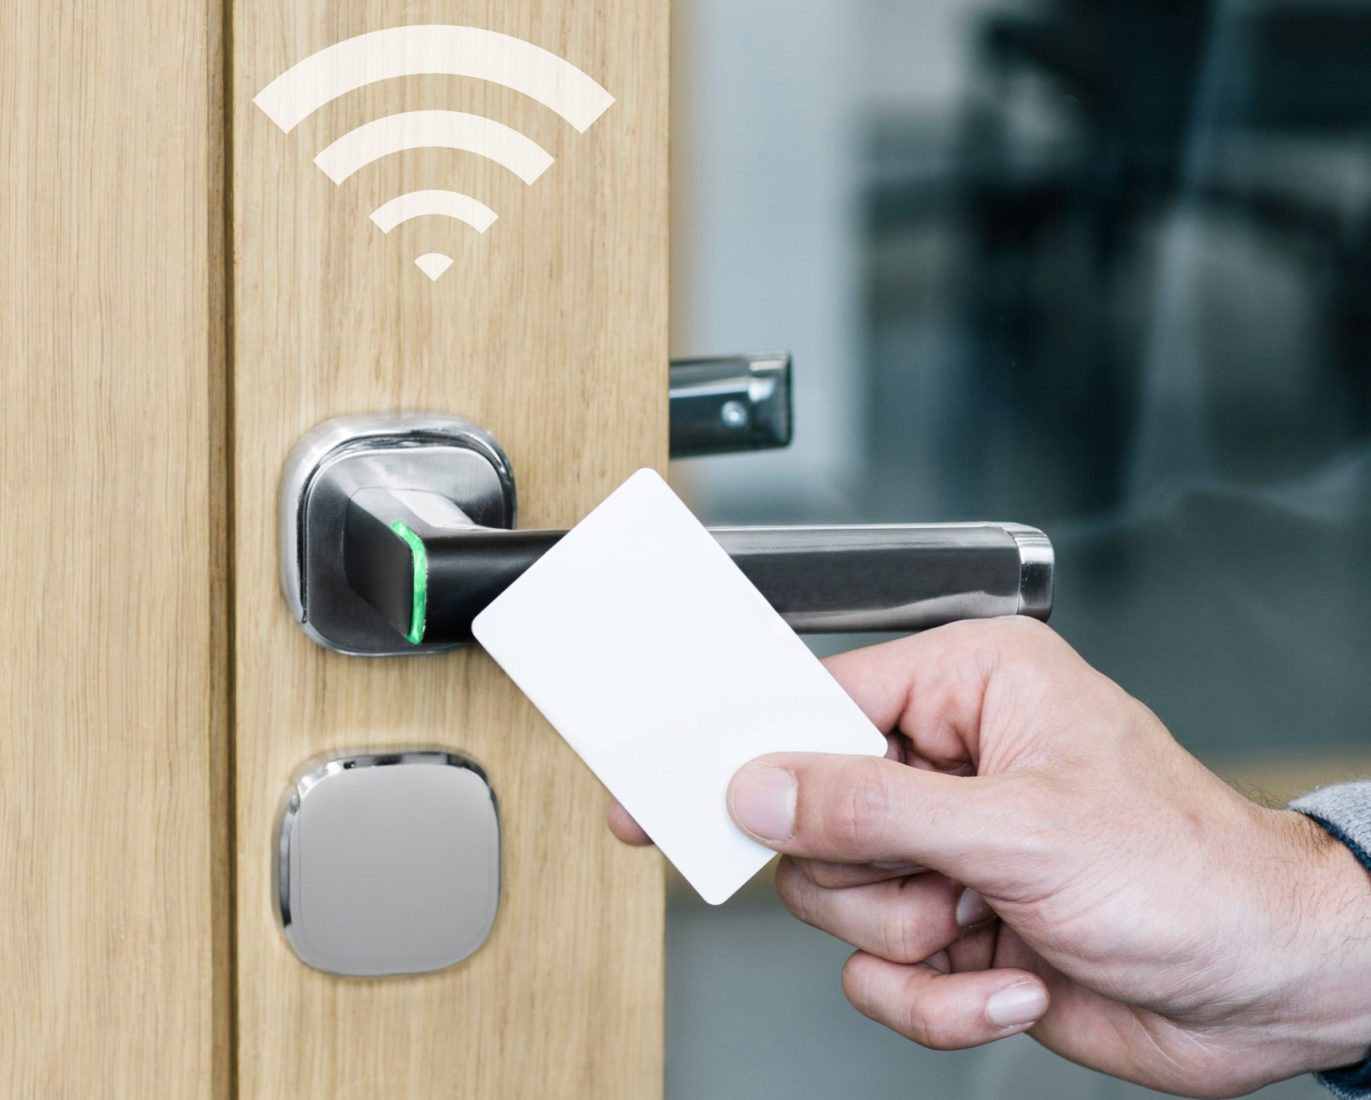 New Aperio H100 Easy To Integrate Wireless Access Control Technology Is Now Inside A Stylish Door Handle